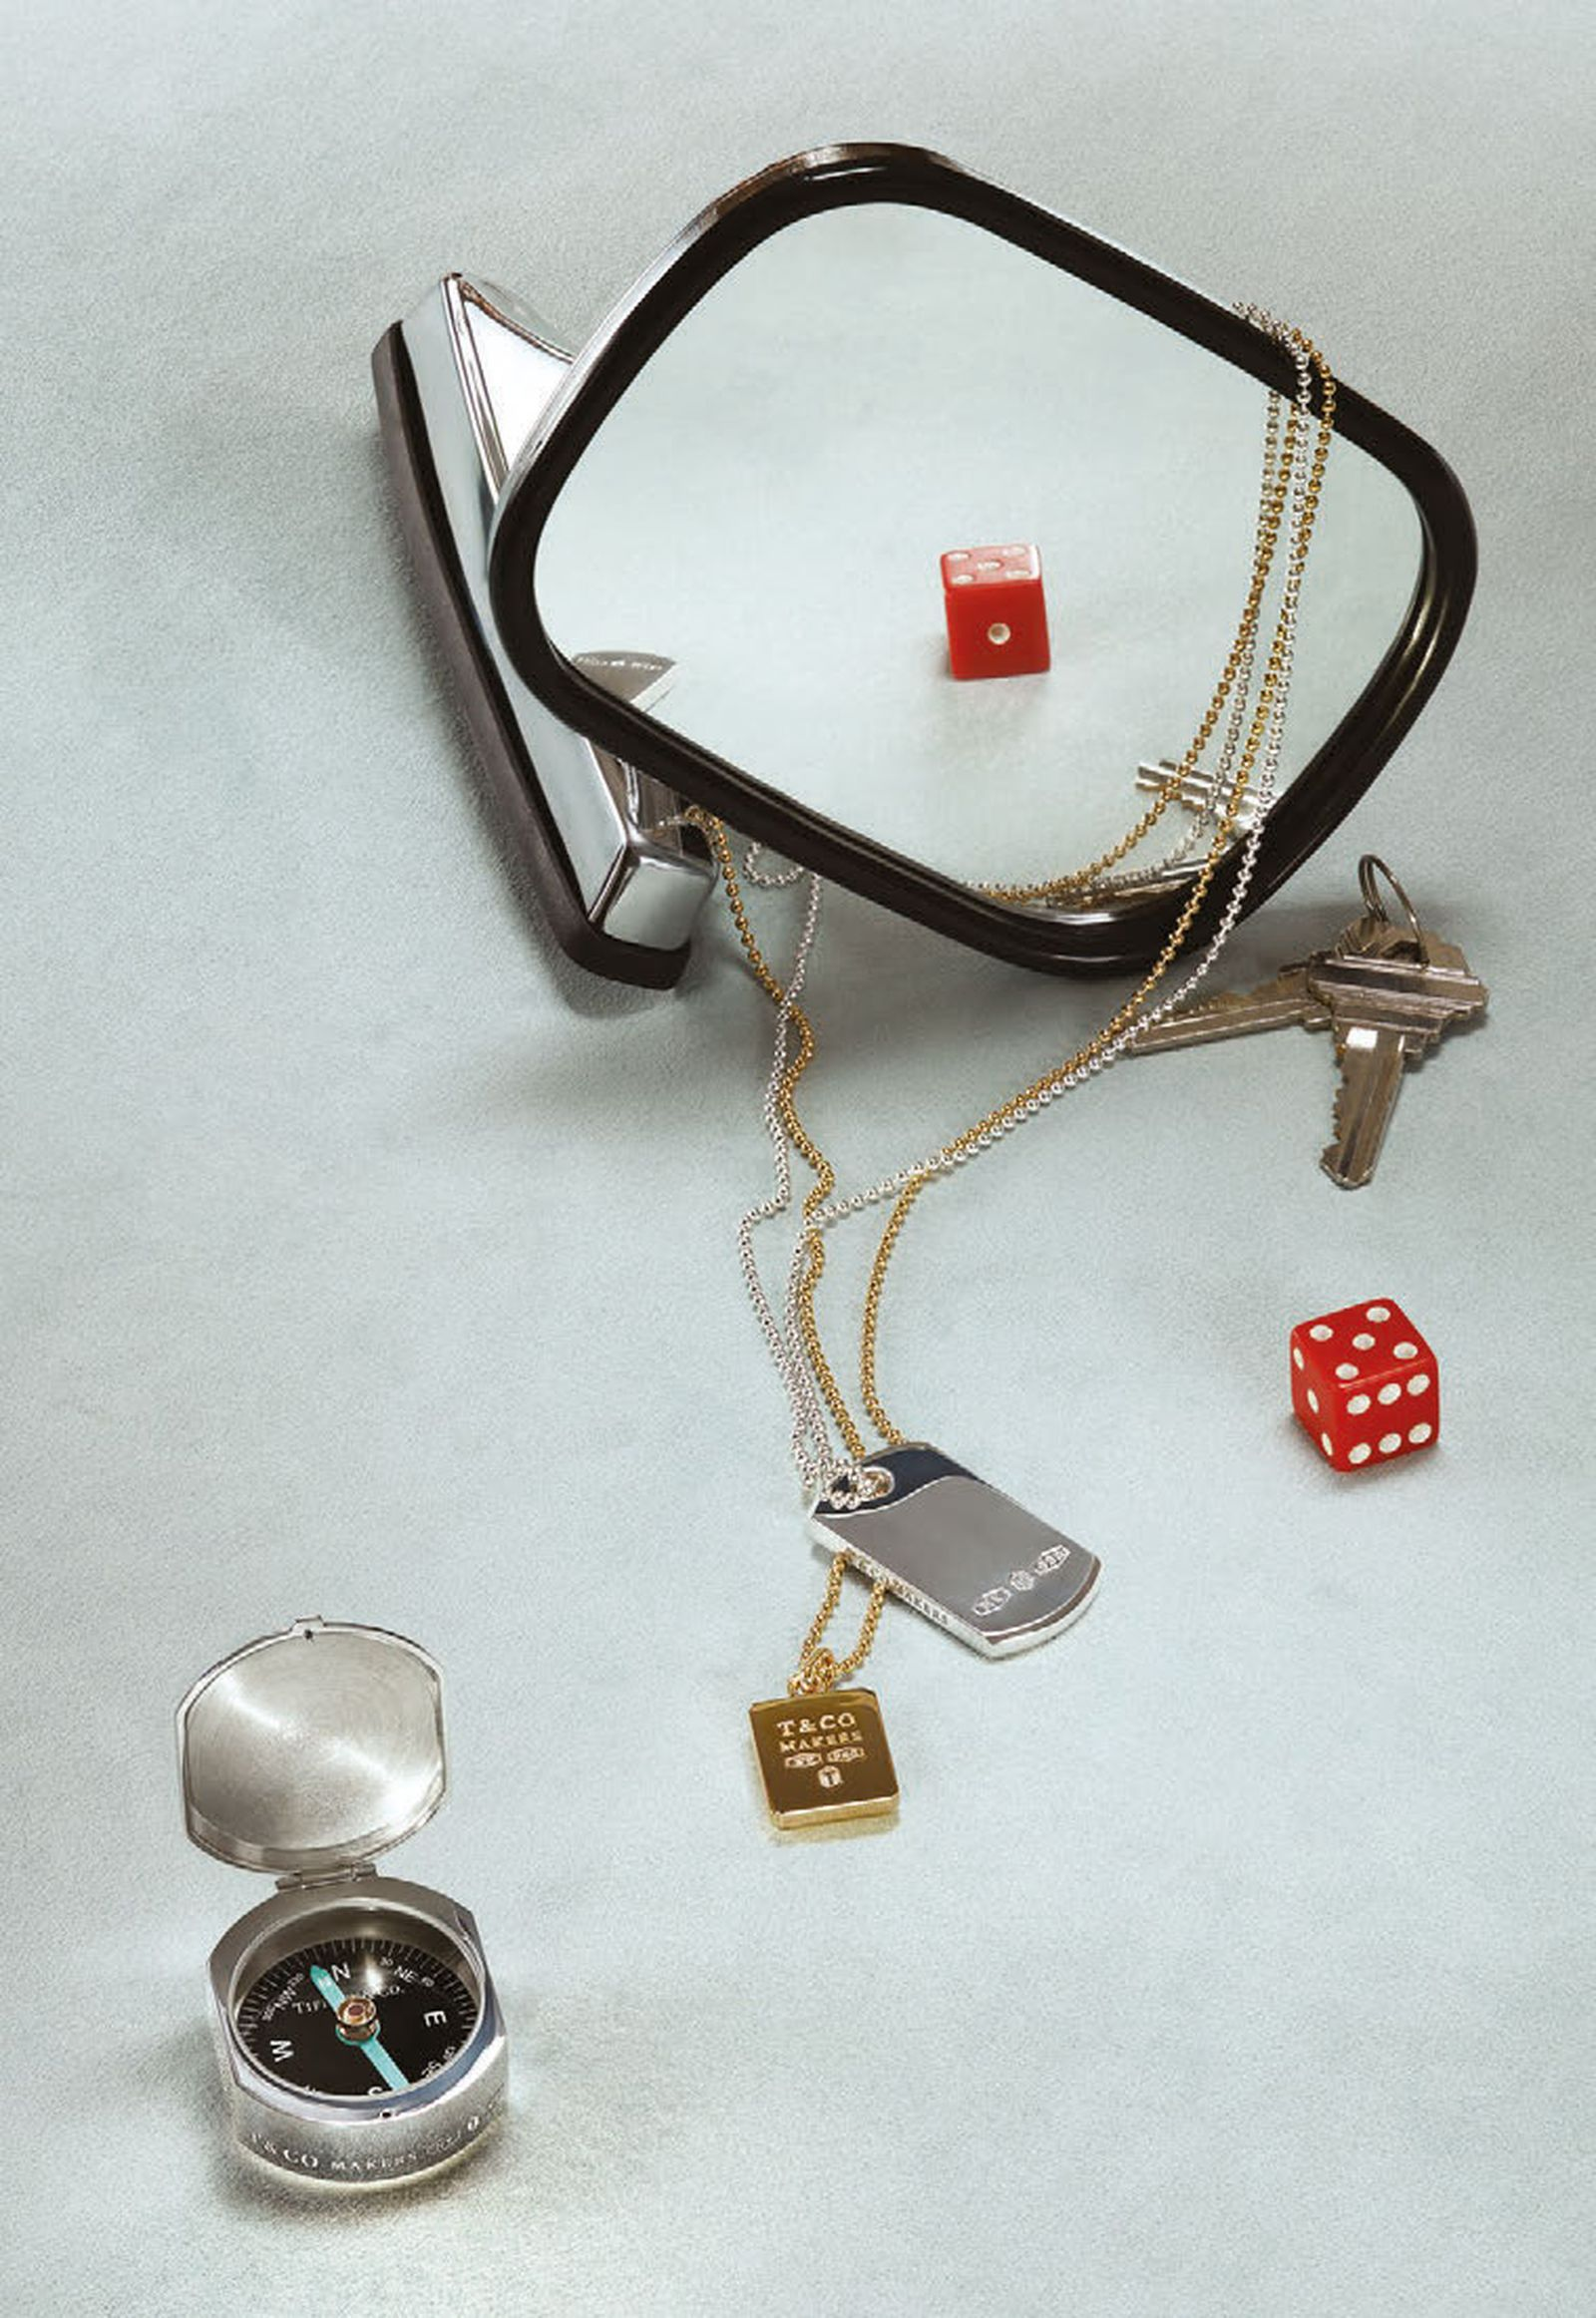 Tiffany & Co Men's Jewelry Collection